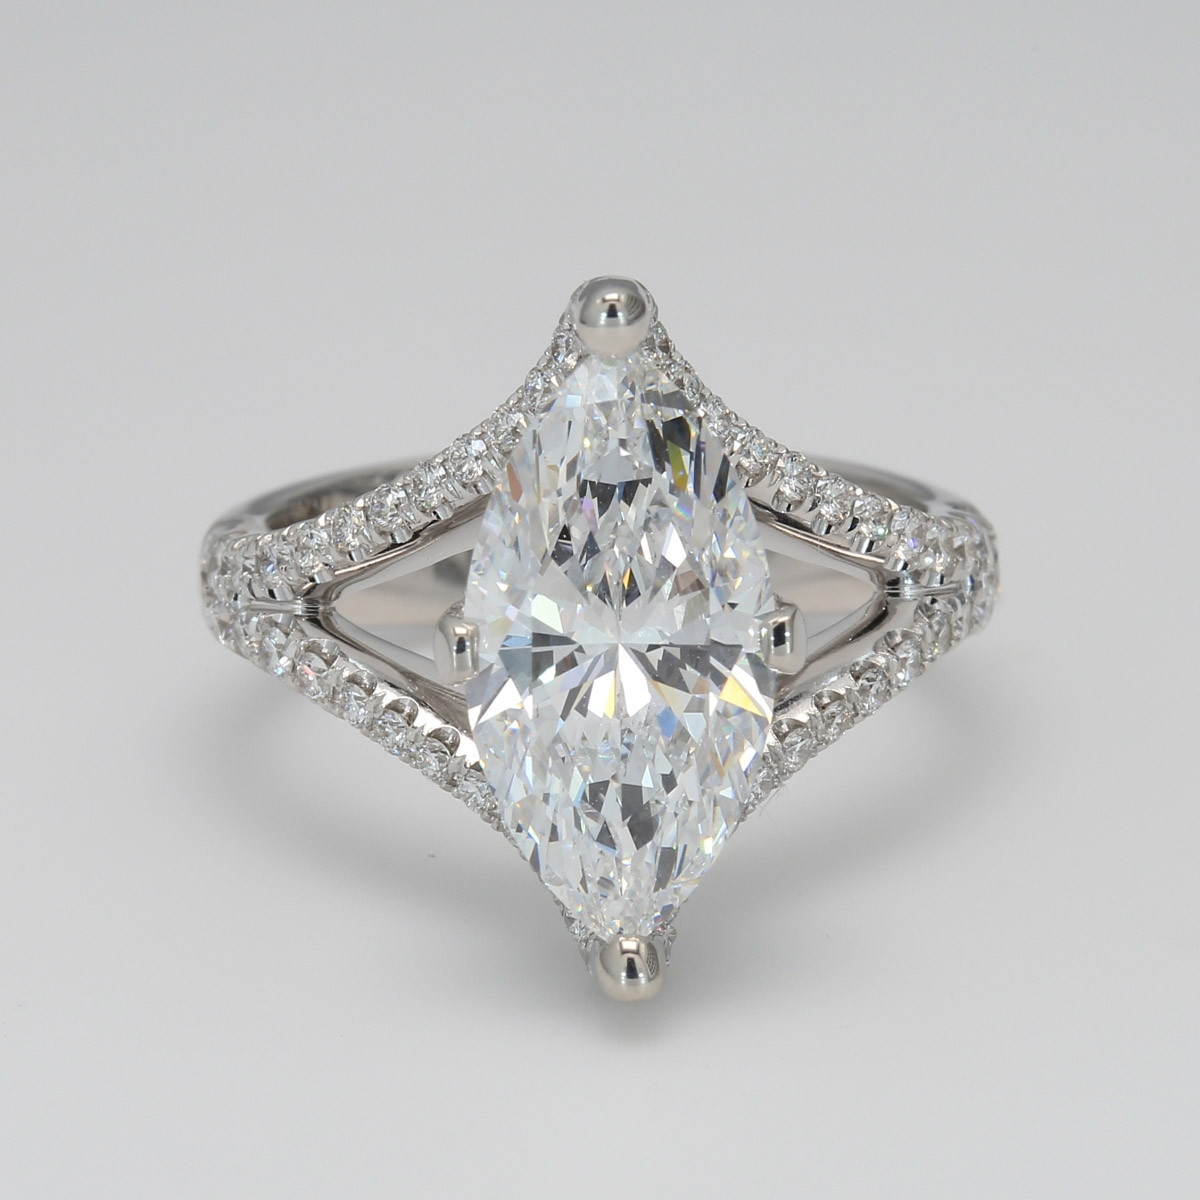 3.61 CT Marquise Cut Split Shank Engagement Ring